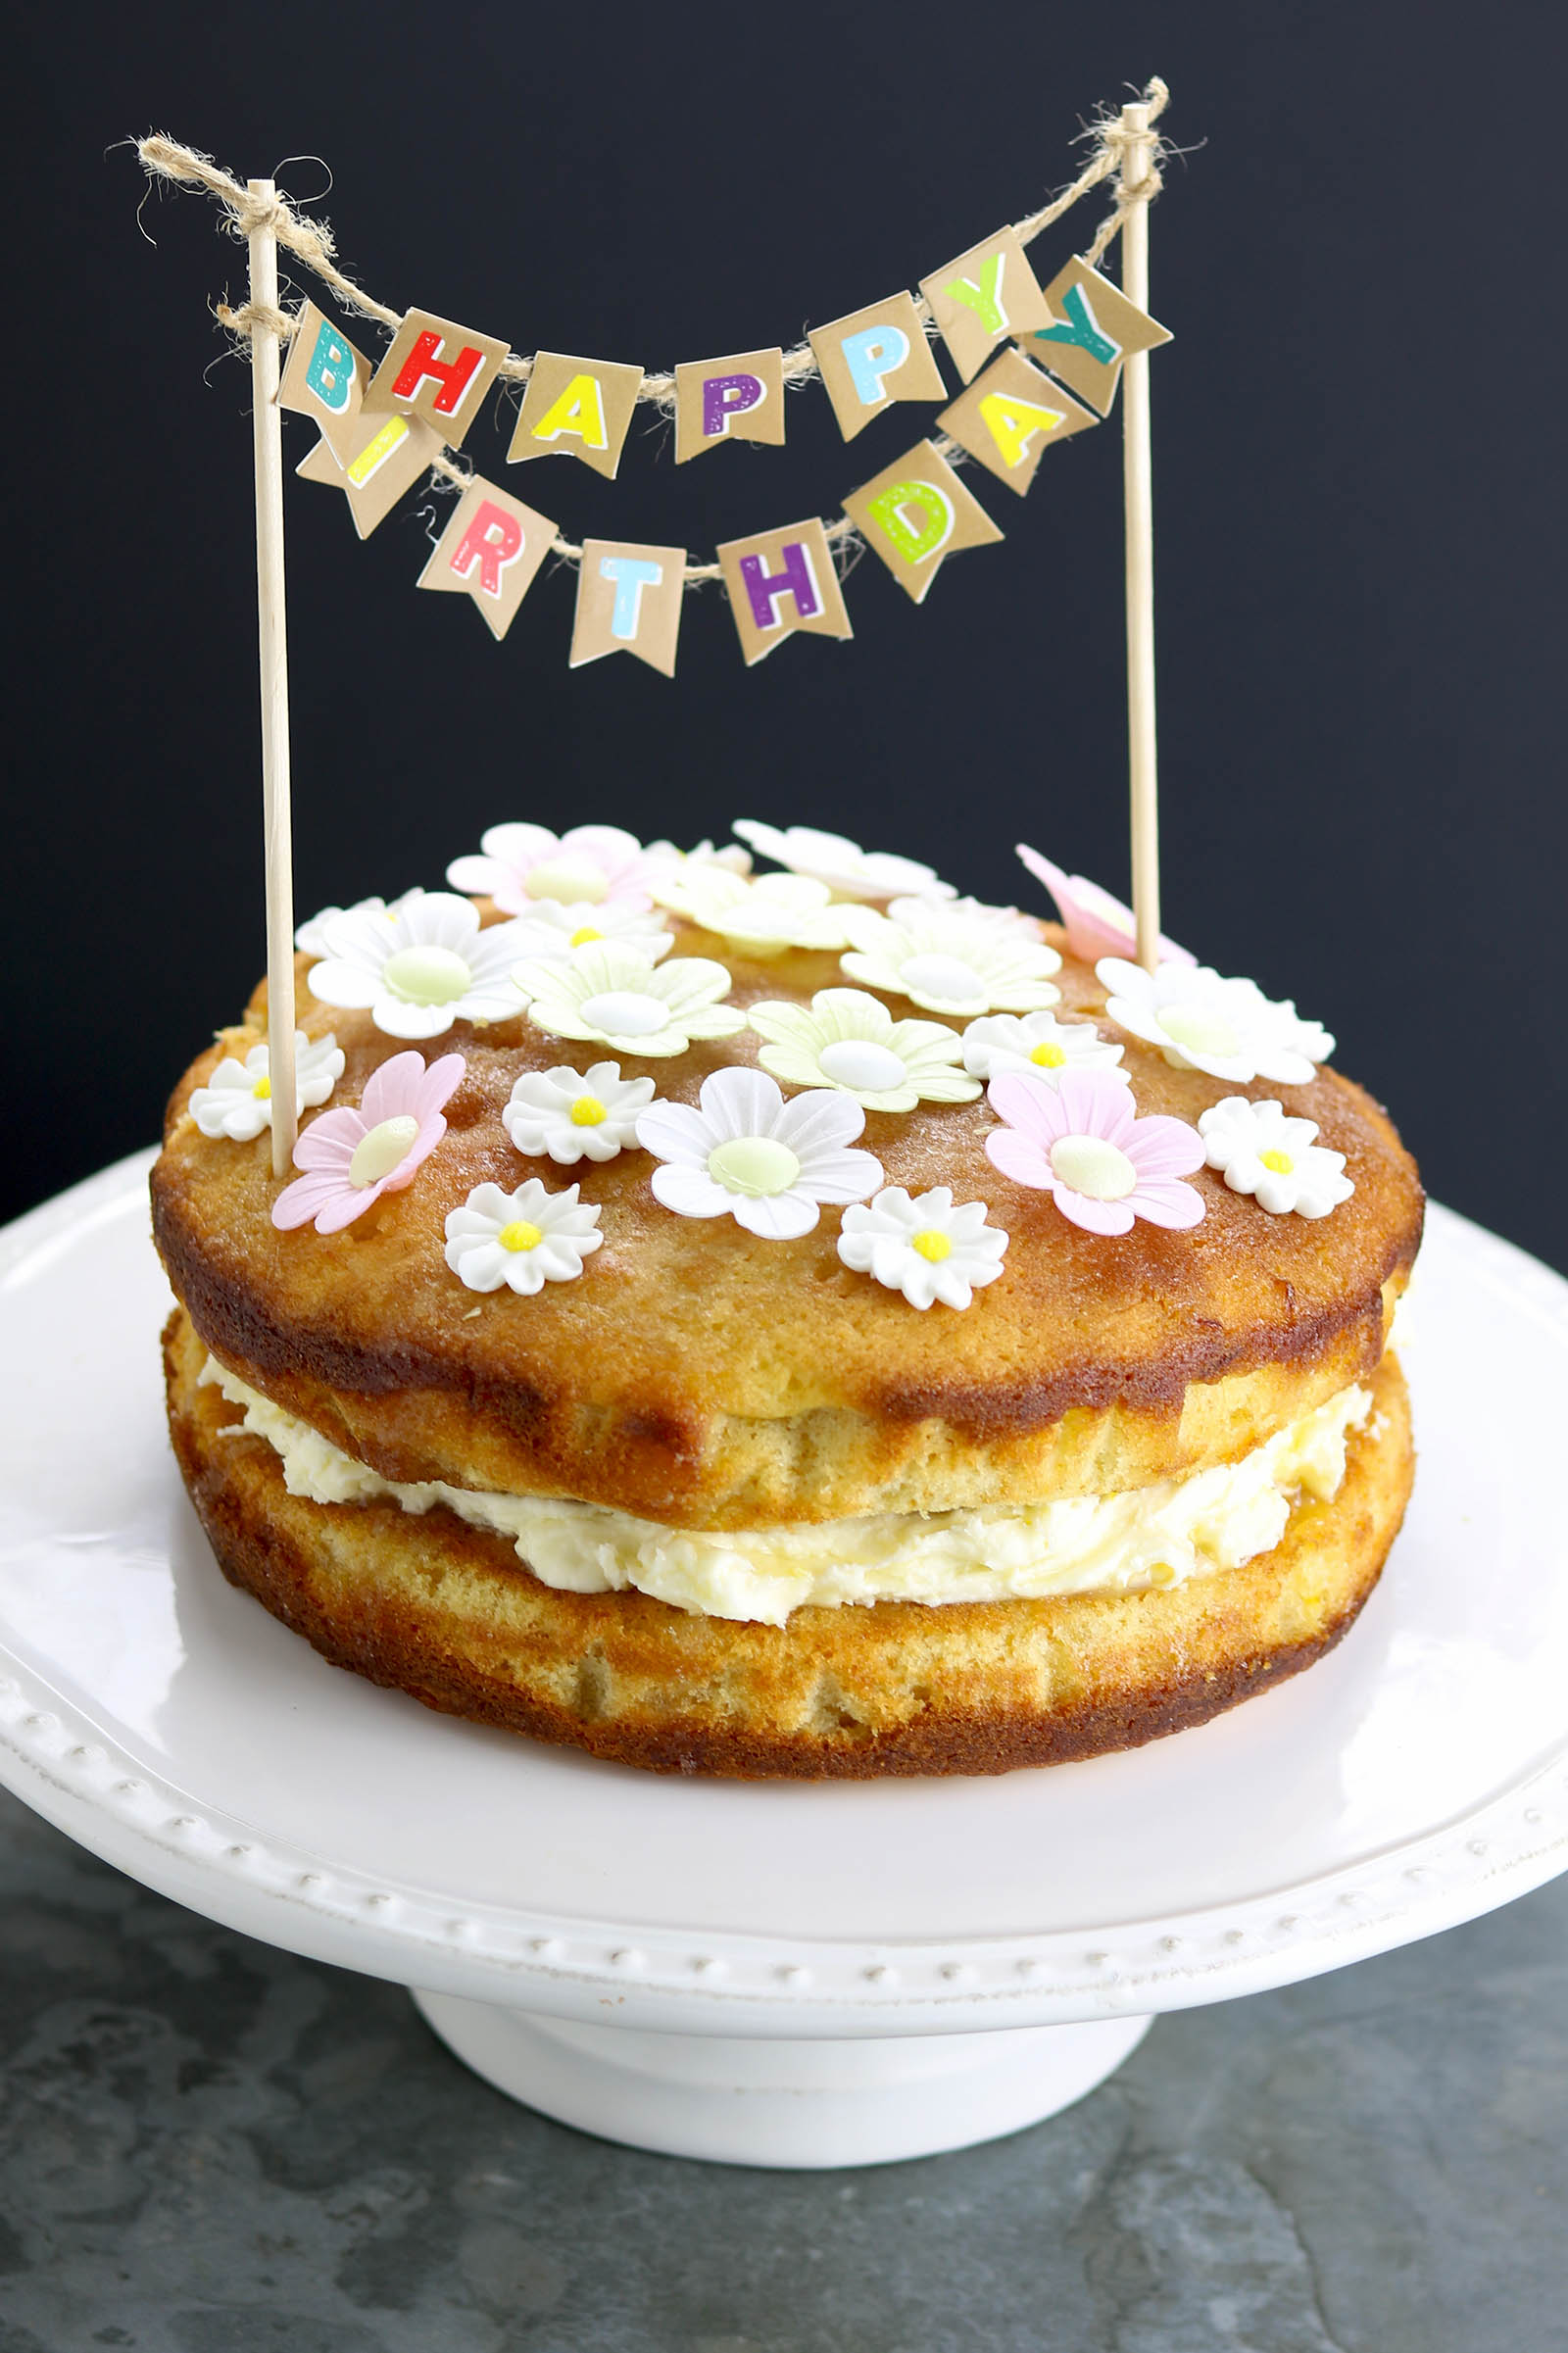 Superb Lemon Drizzle Birthday Cake The Last Food Blog Birthday Cards Printable Trancafe Filternl